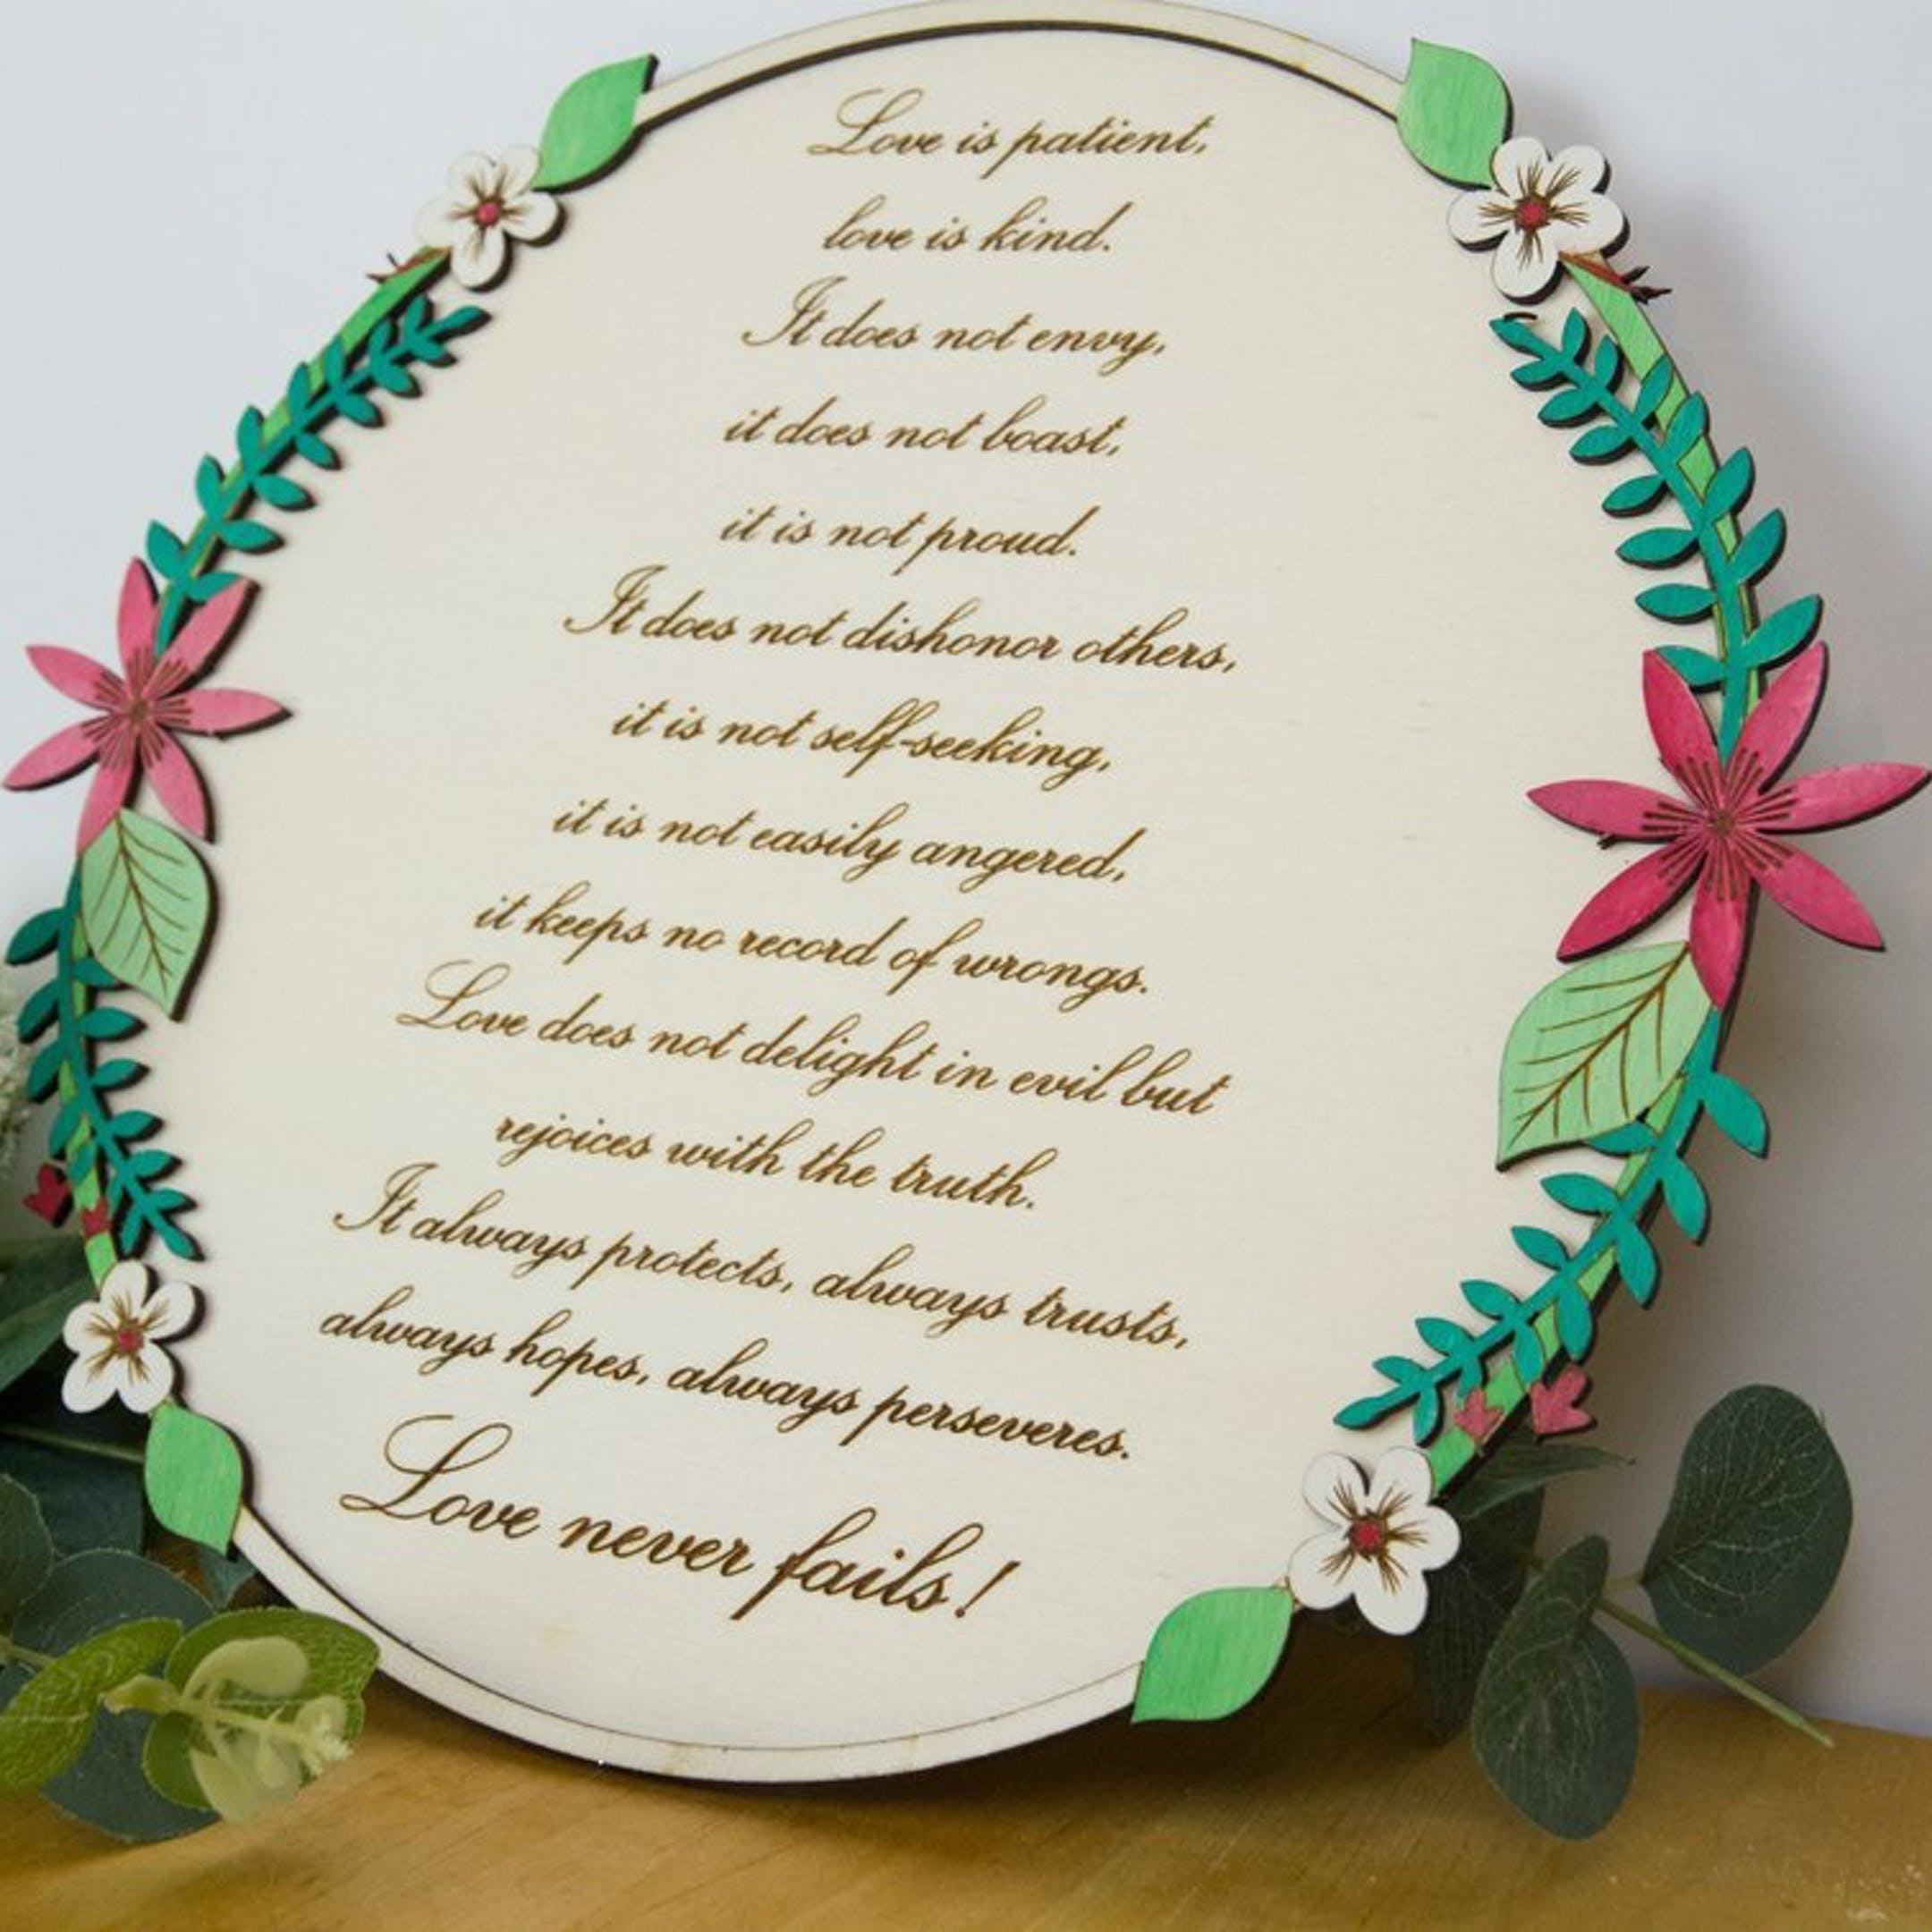 1 Corinthians 13:4-8 Wooden Wall Sign - Birch and Tides